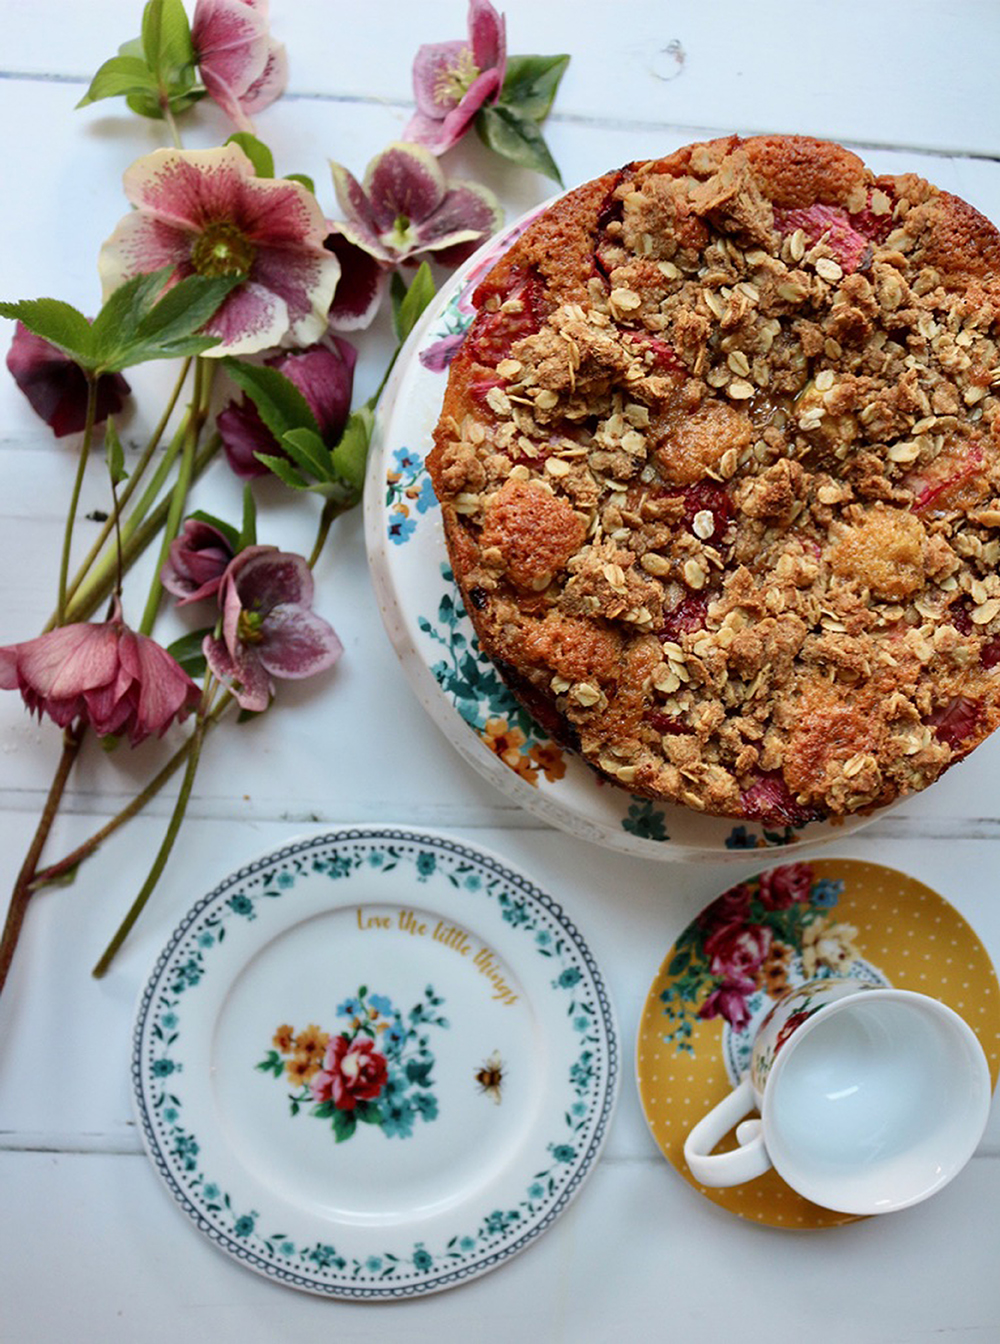 Rhubarb crumble cake for Mother's Day